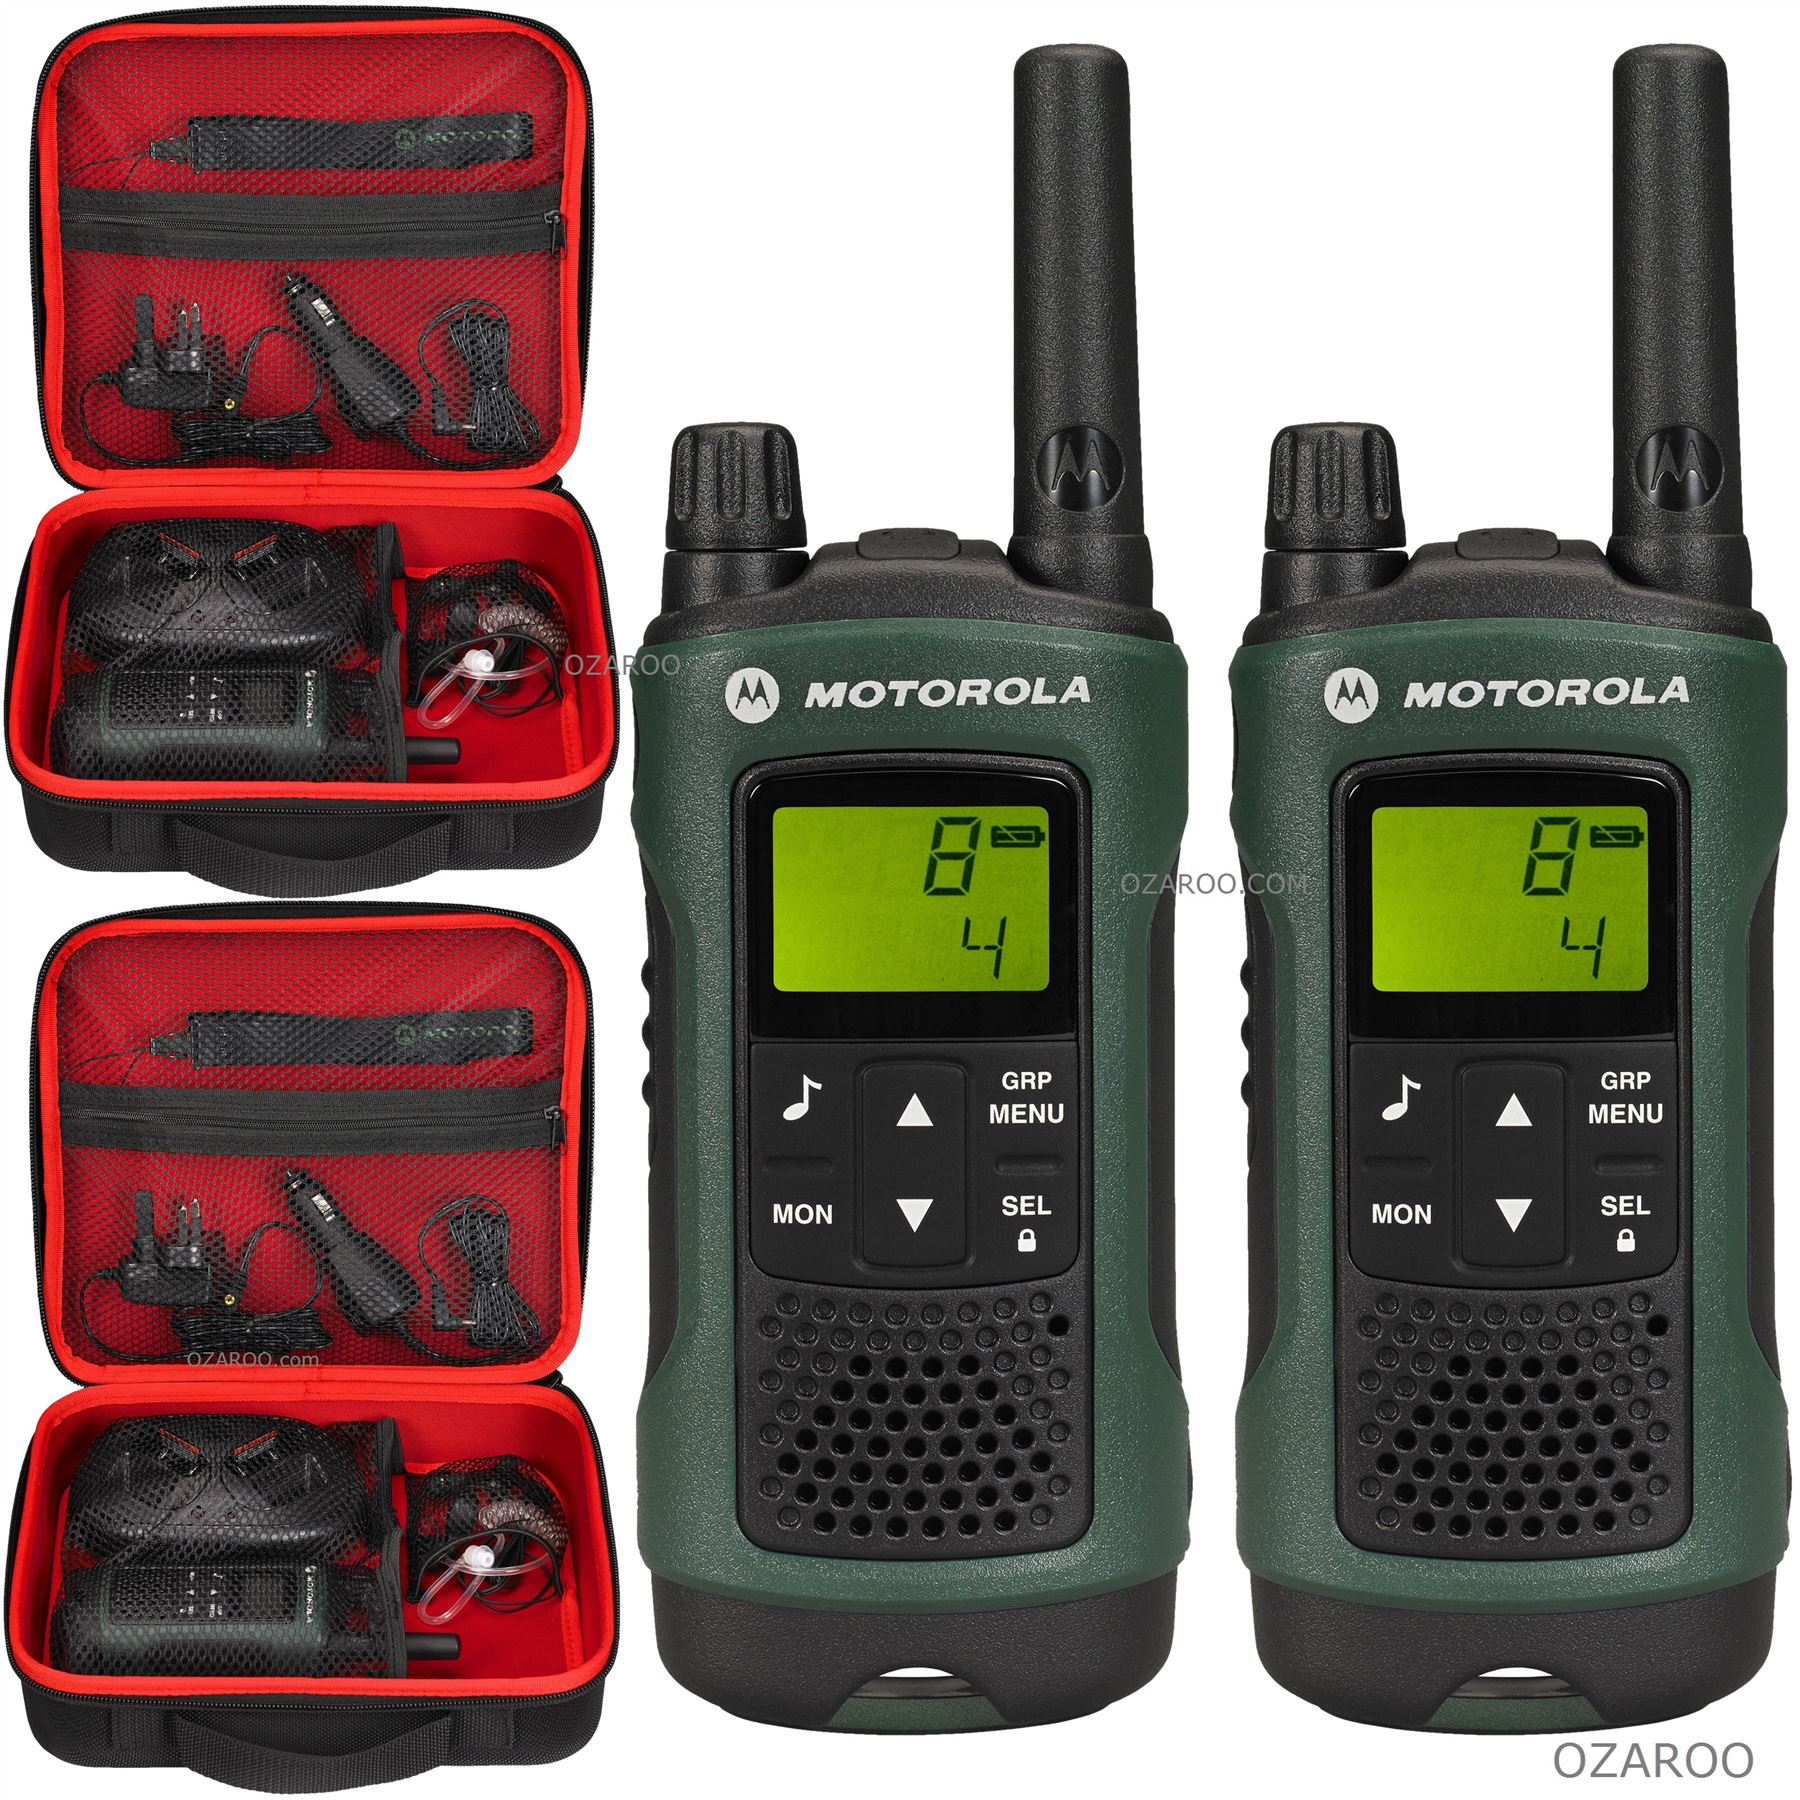 2 x motorola talker tlkr t81 hunter 10km walkie talkie. Black Bedroom Furniture Sets. Home Design Ideas